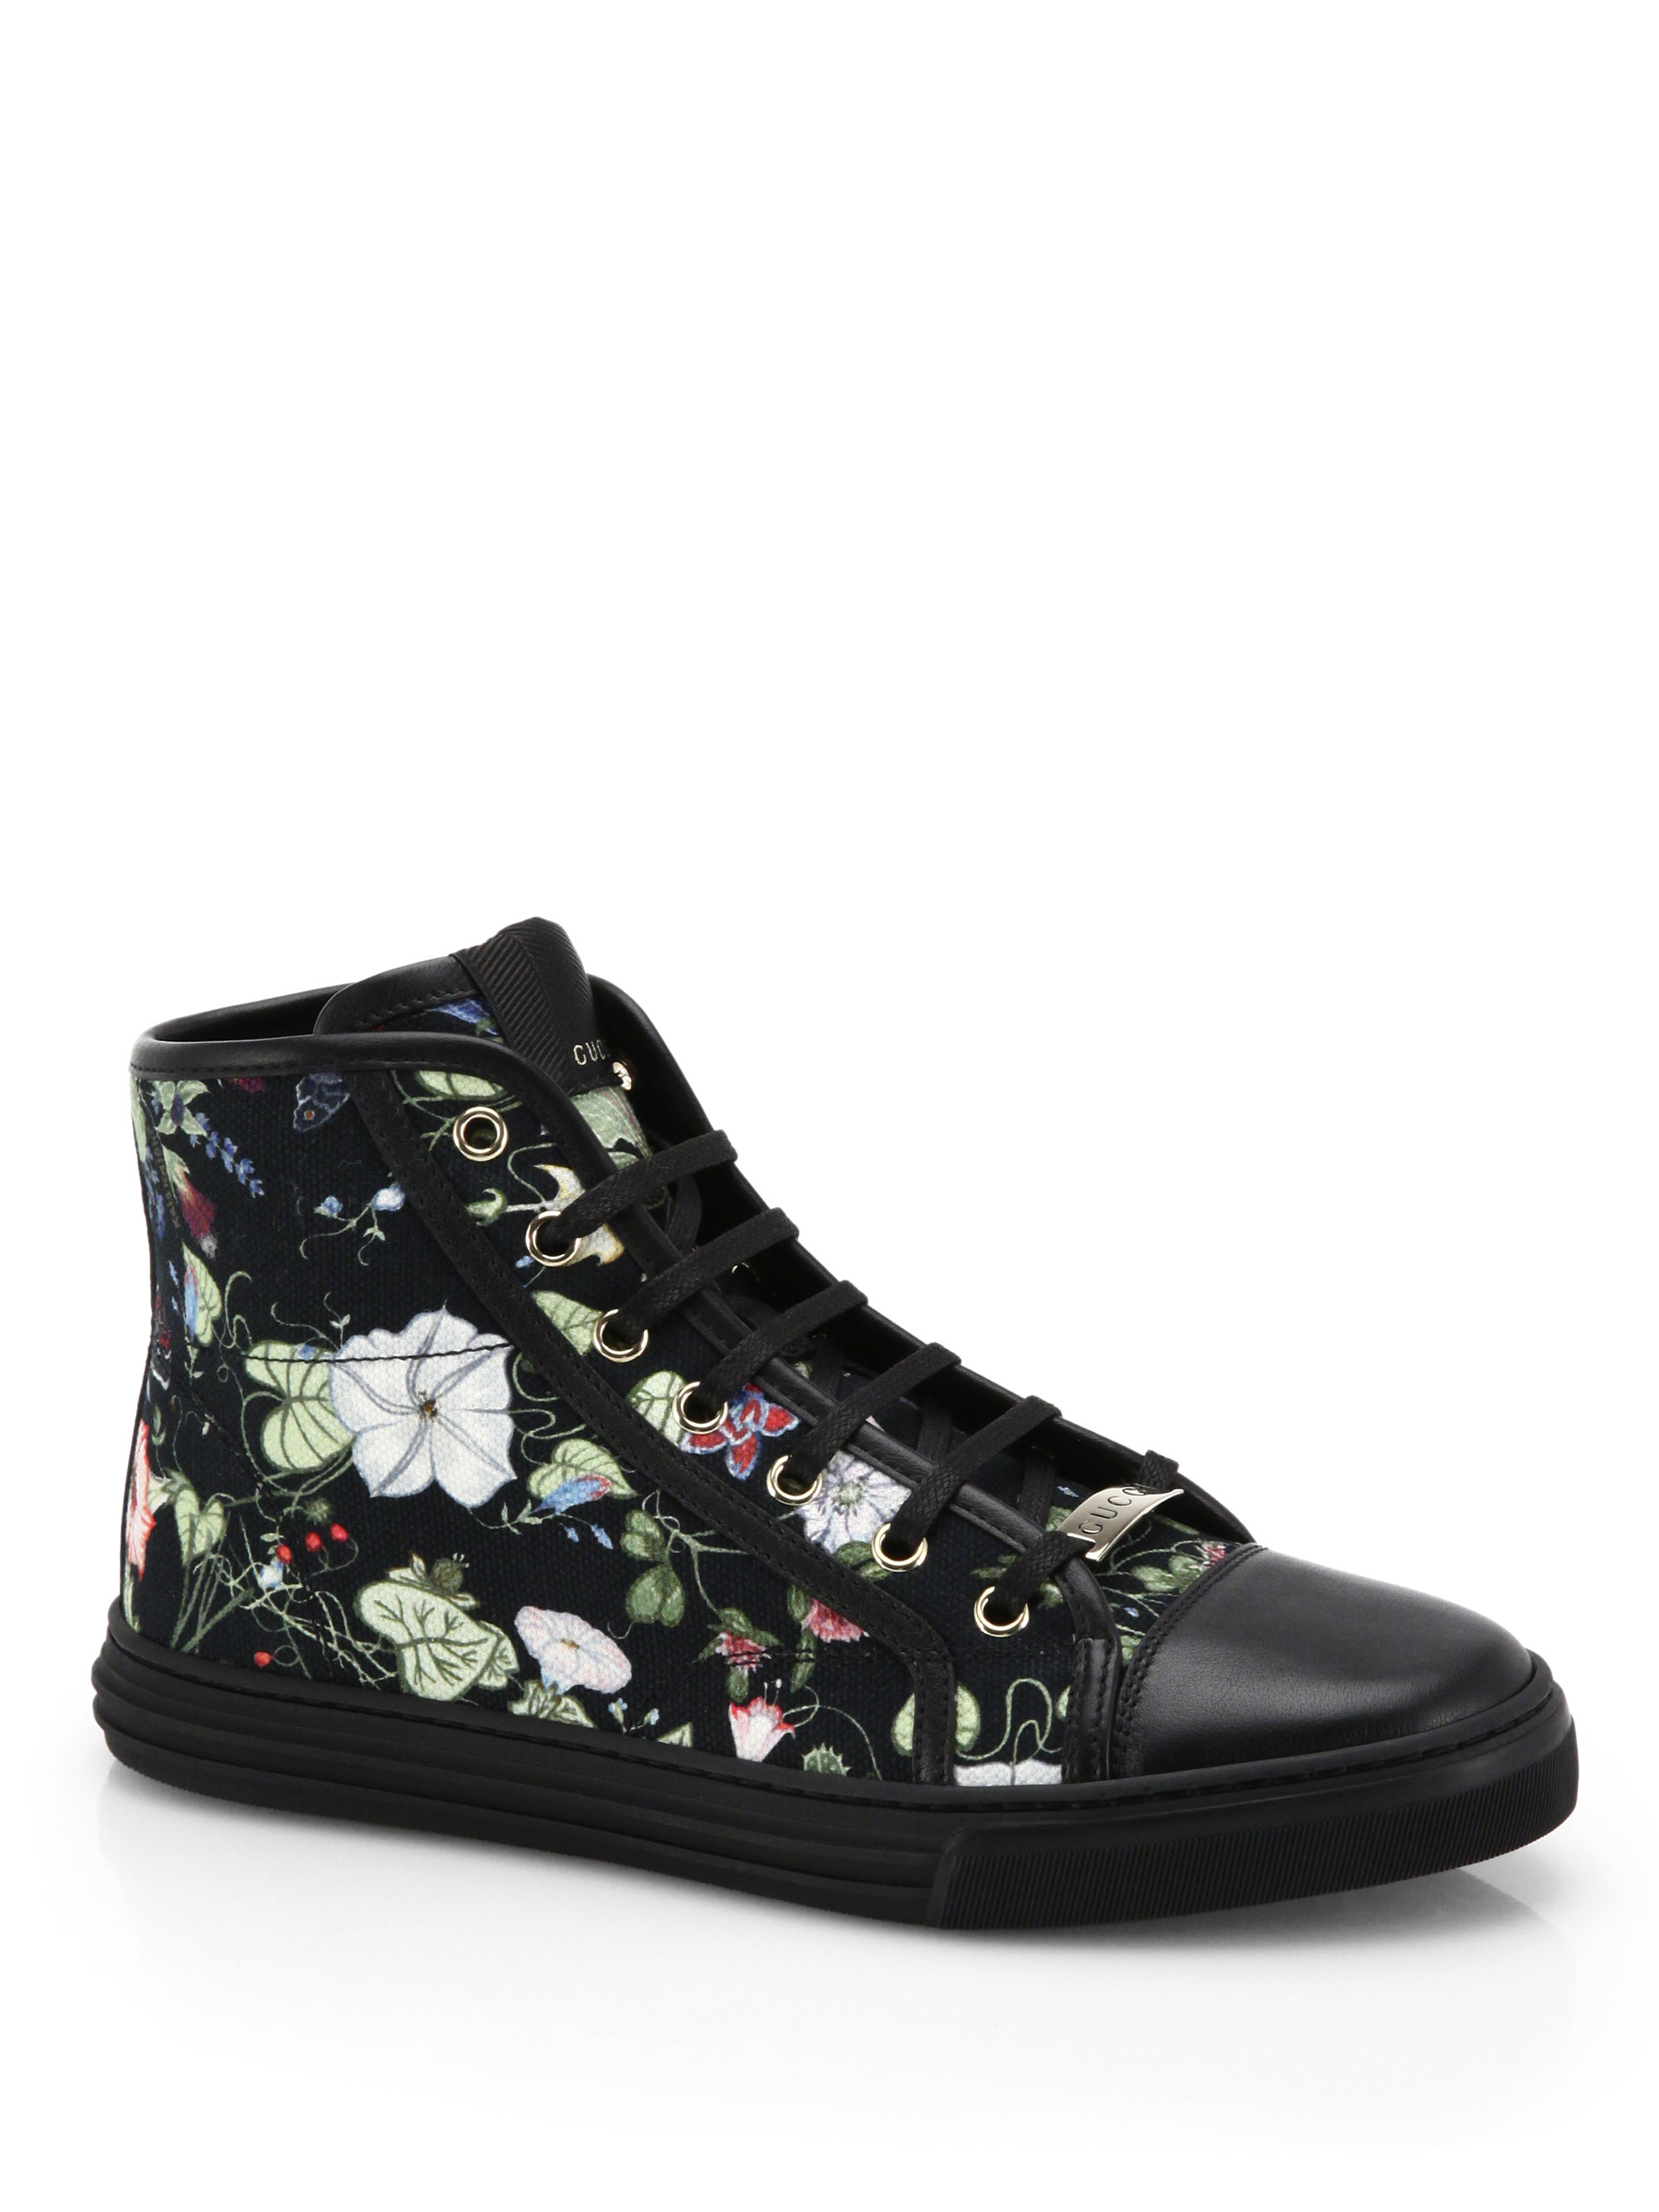 Gucci Sneaker Floral